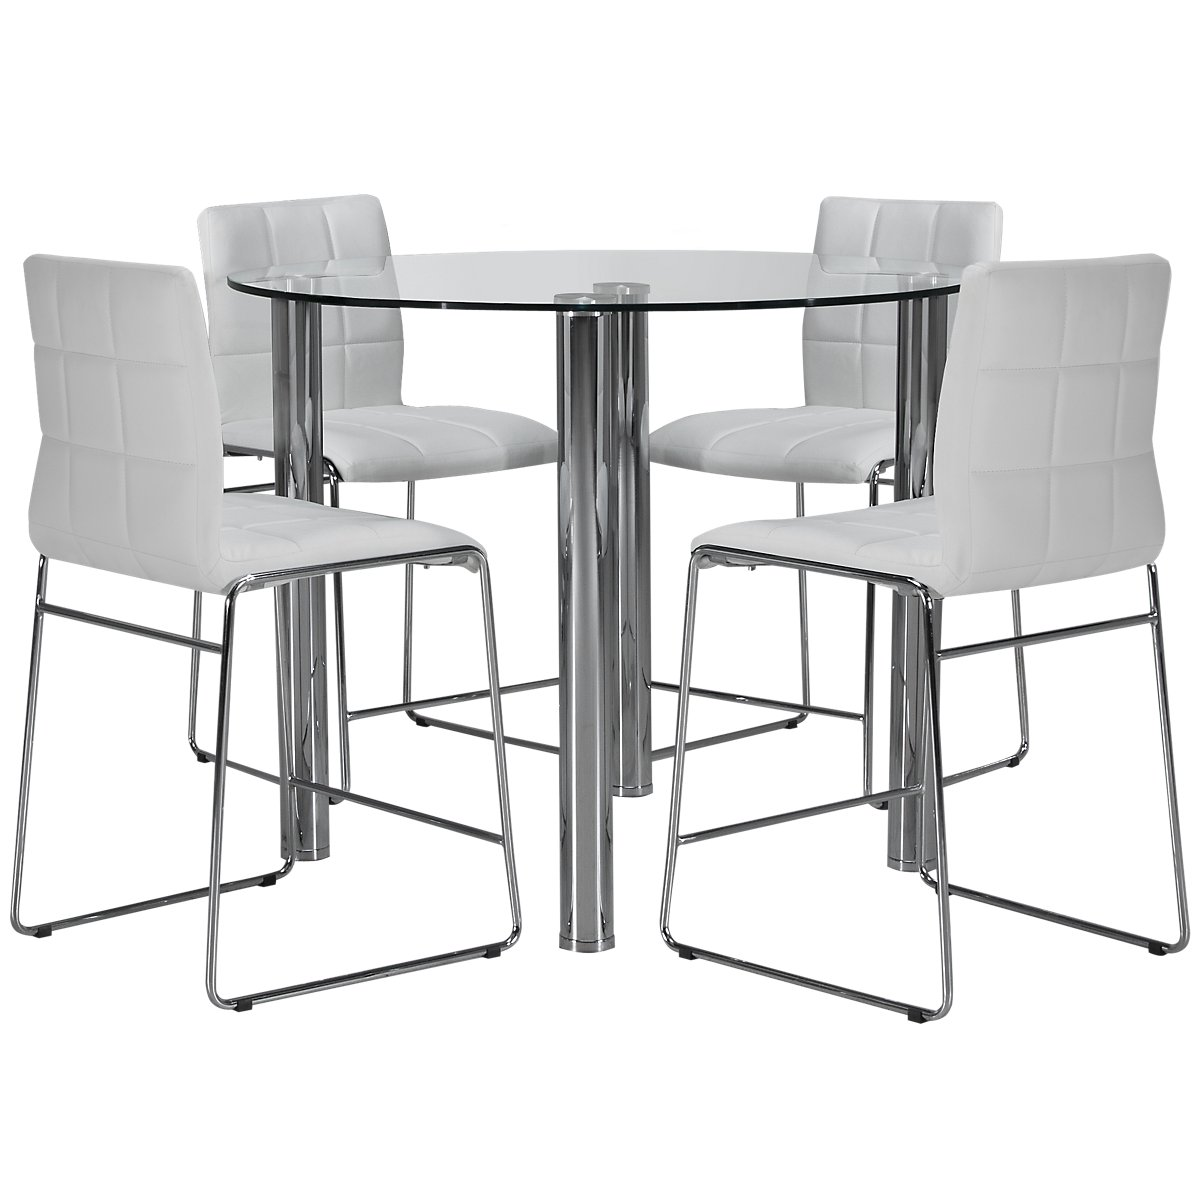 Napoli White Round High Table & 4 Upholstered Barstools